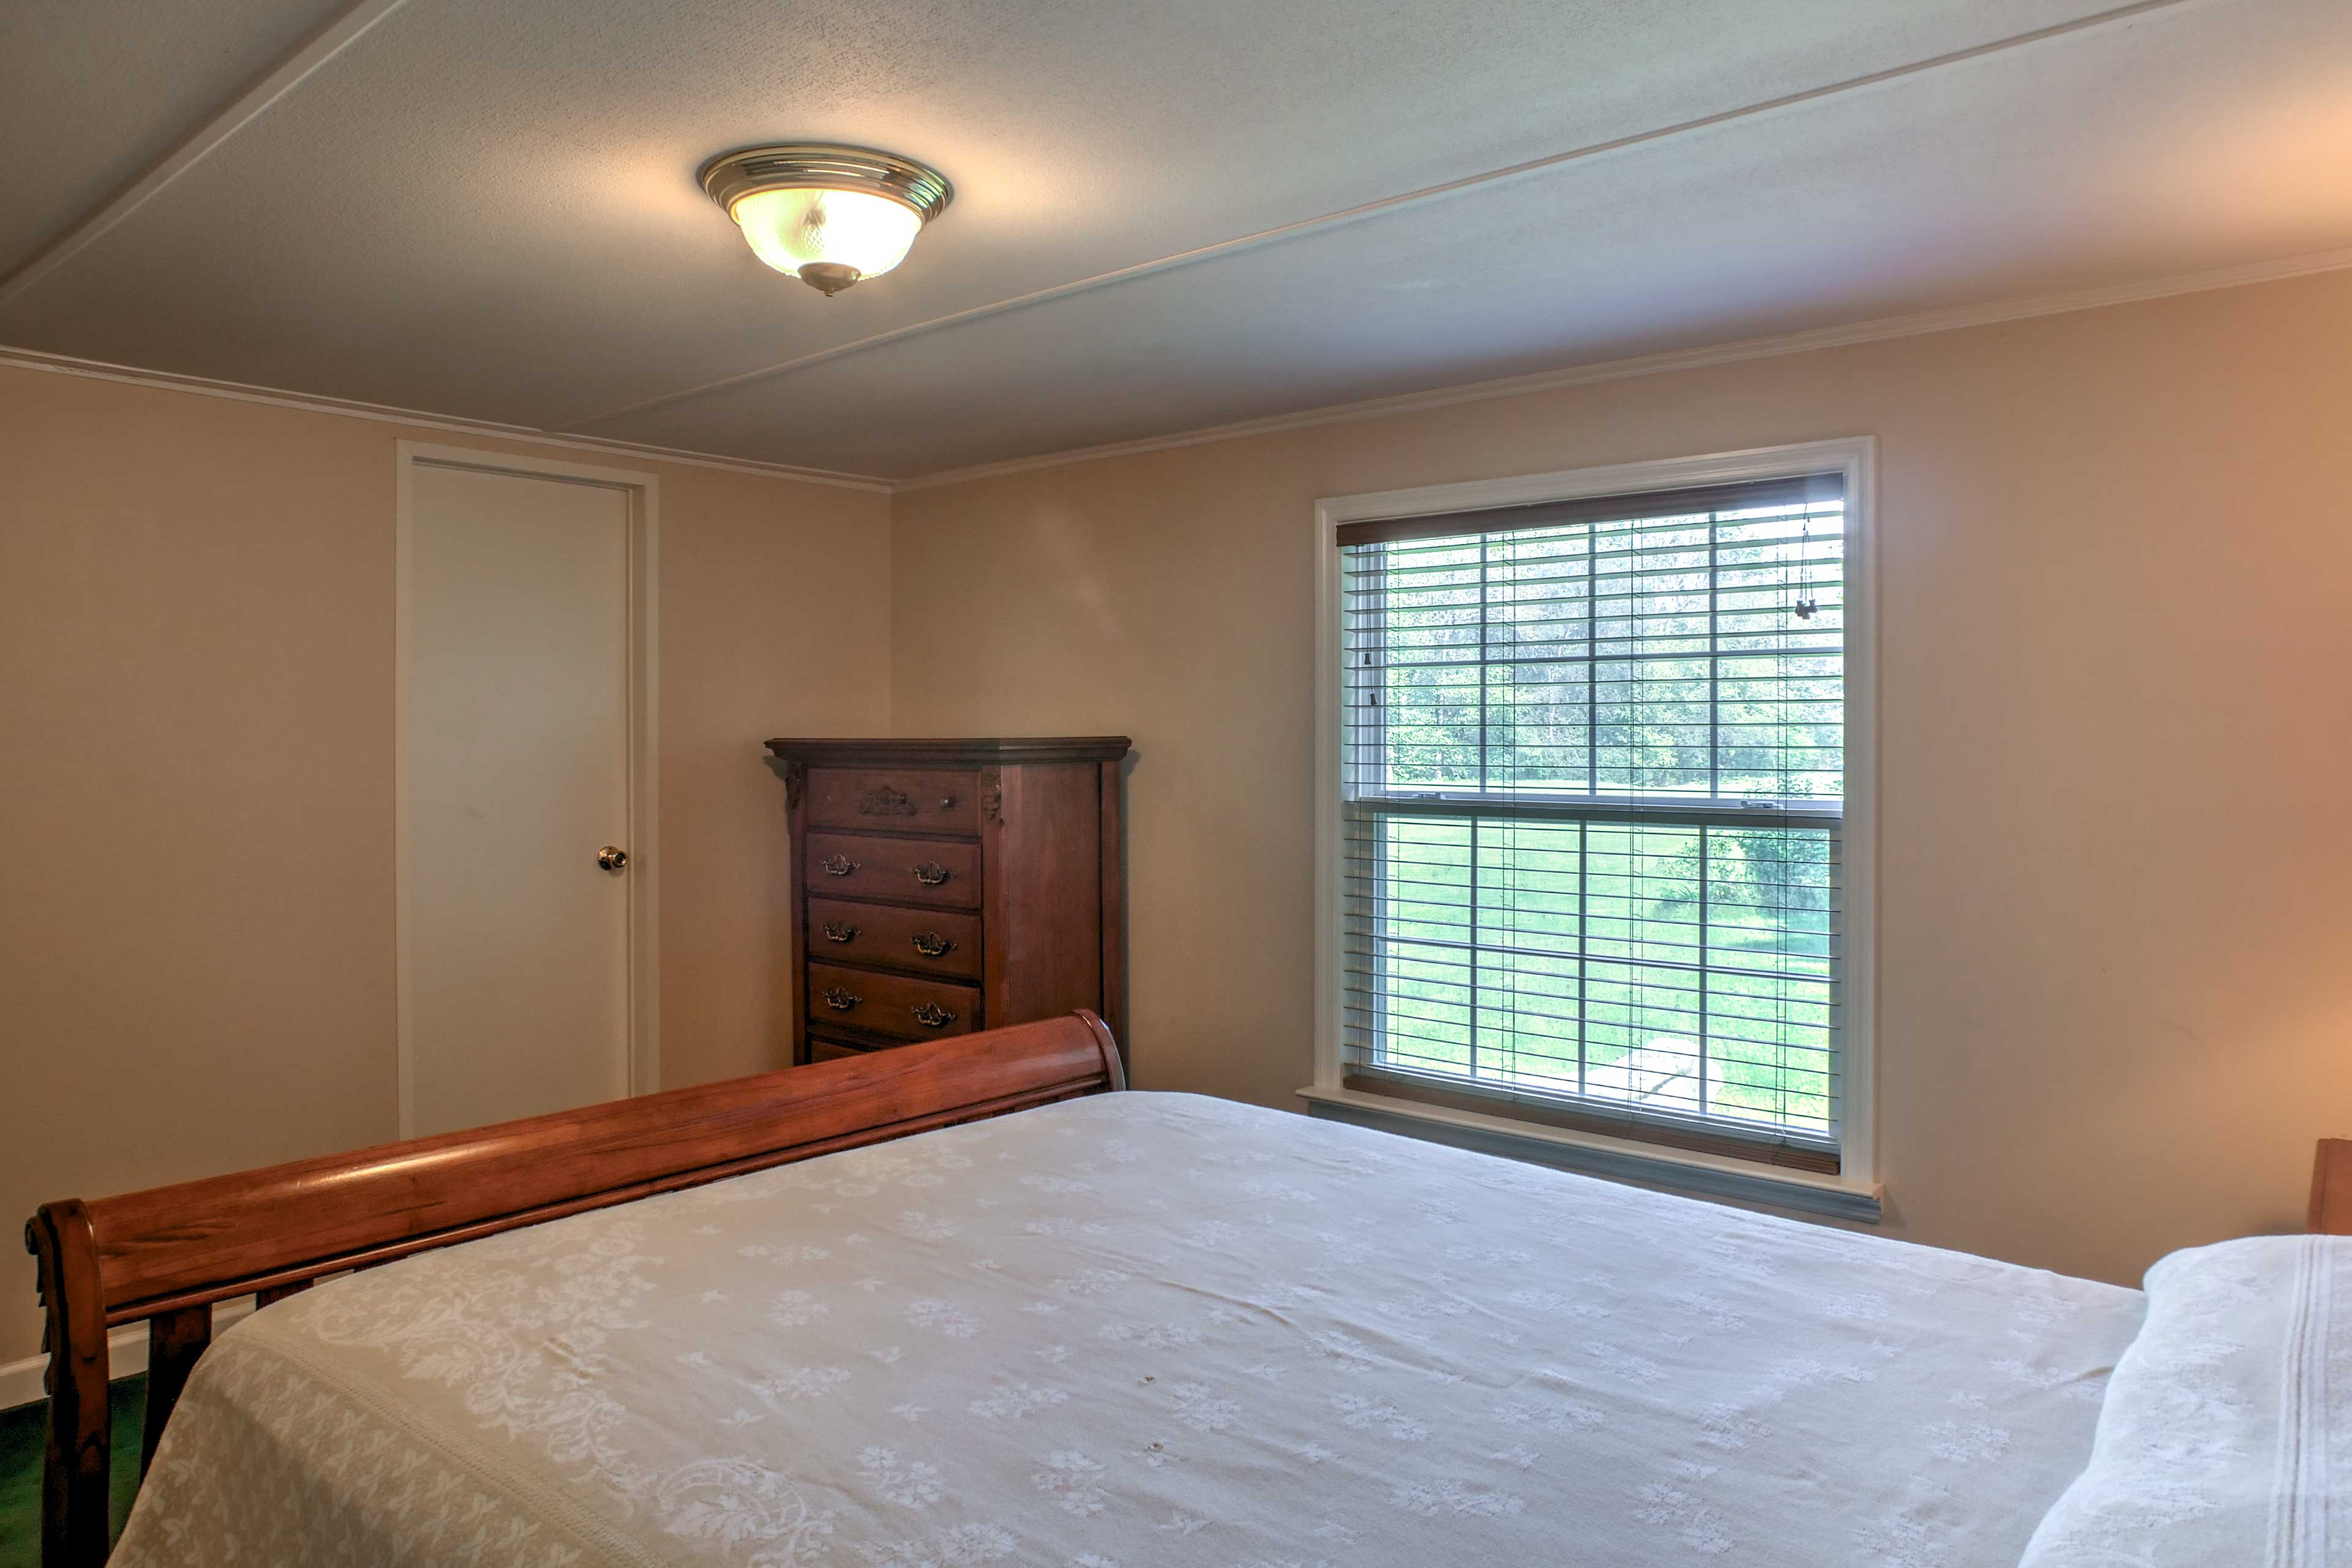 The window overlooks the expansive field in front of the property.